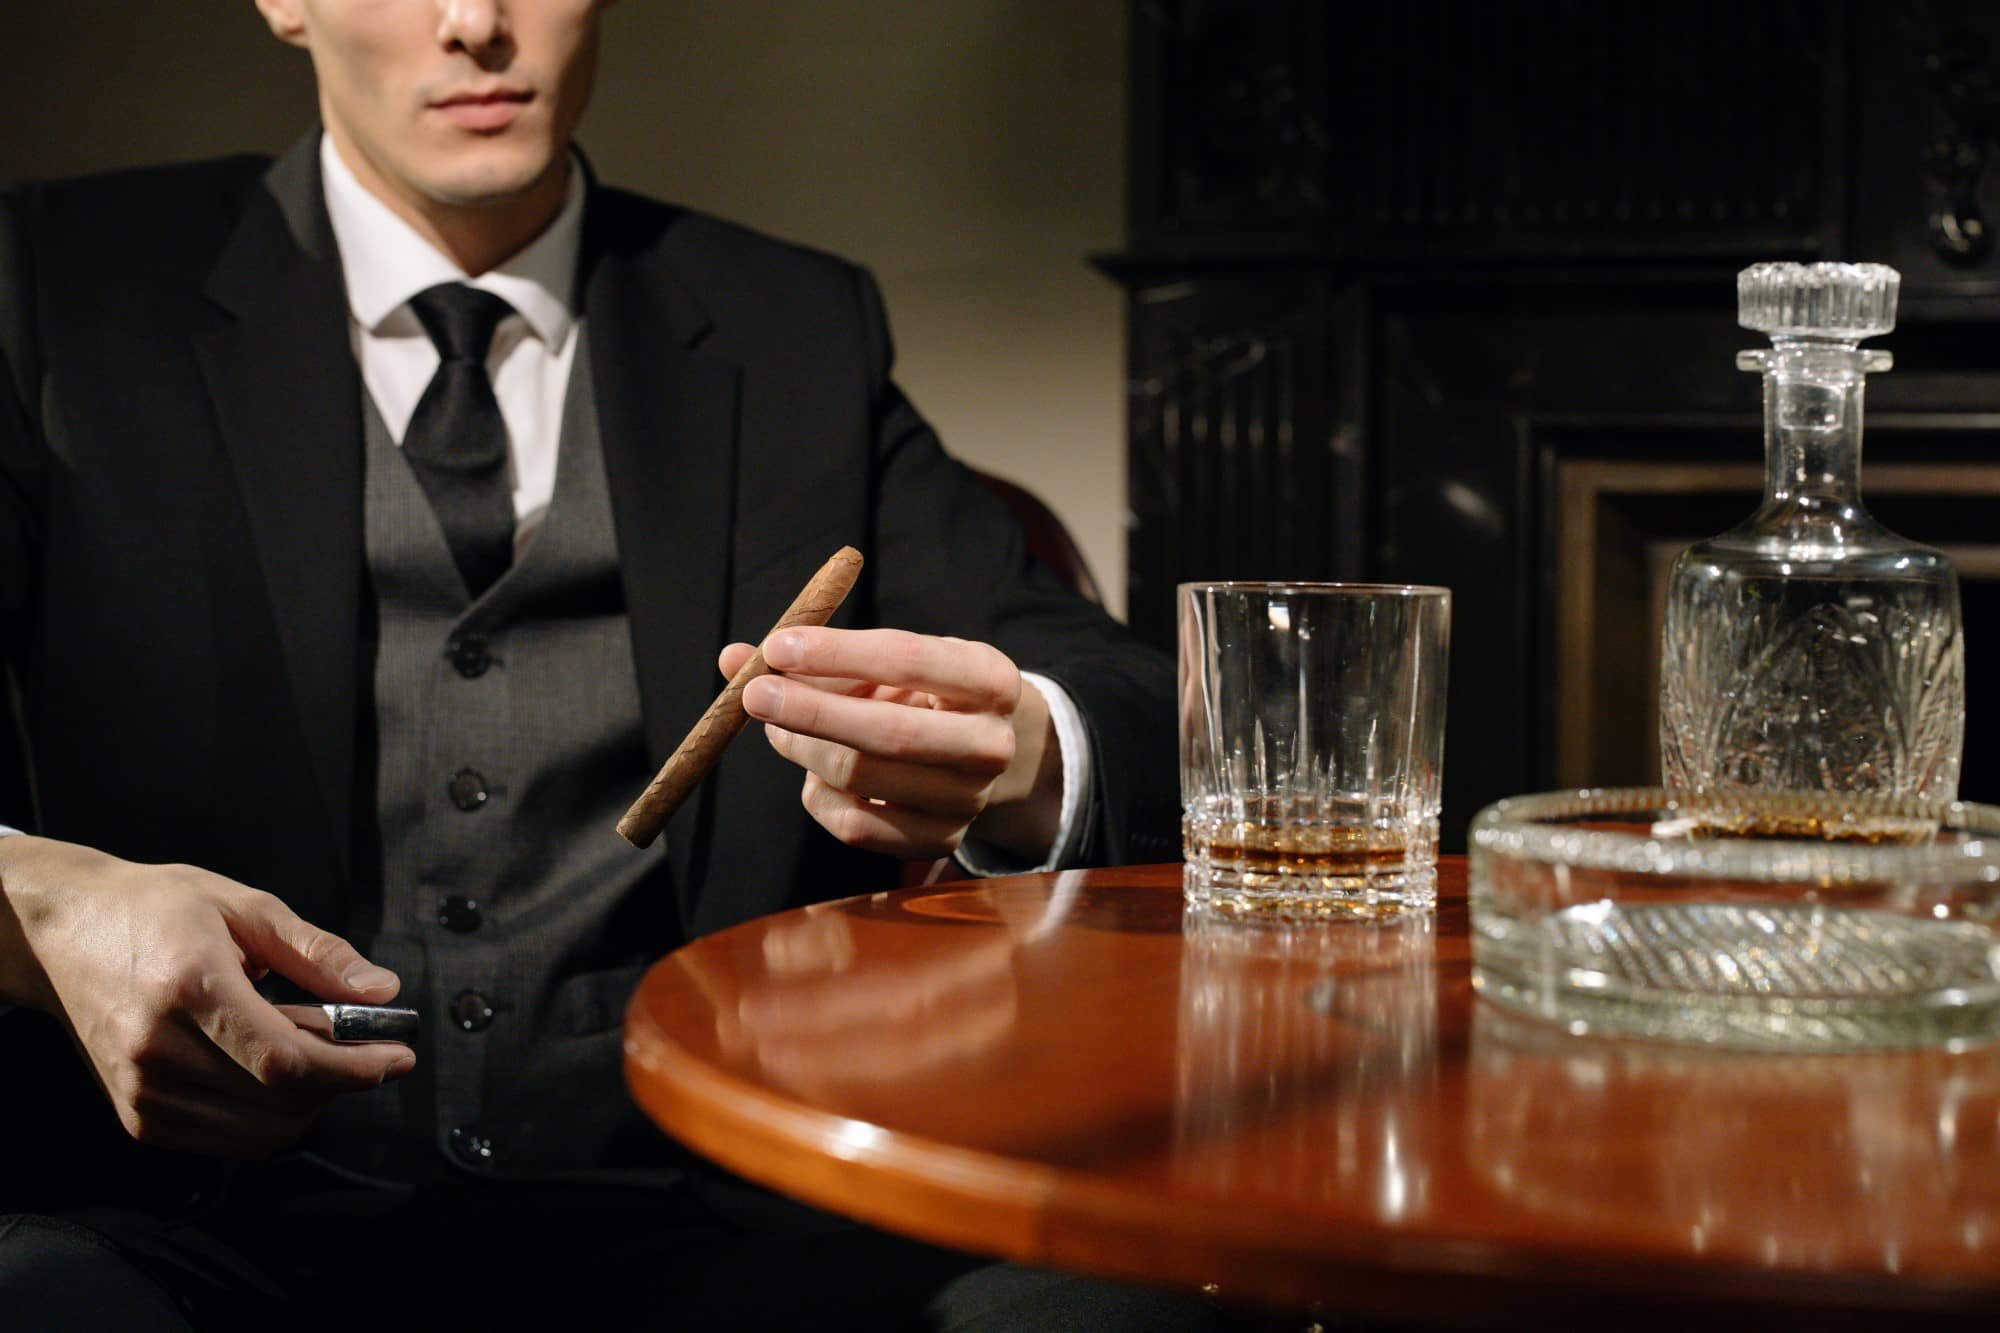 Gentleman seated at a table with a glass of whisky and a cigar